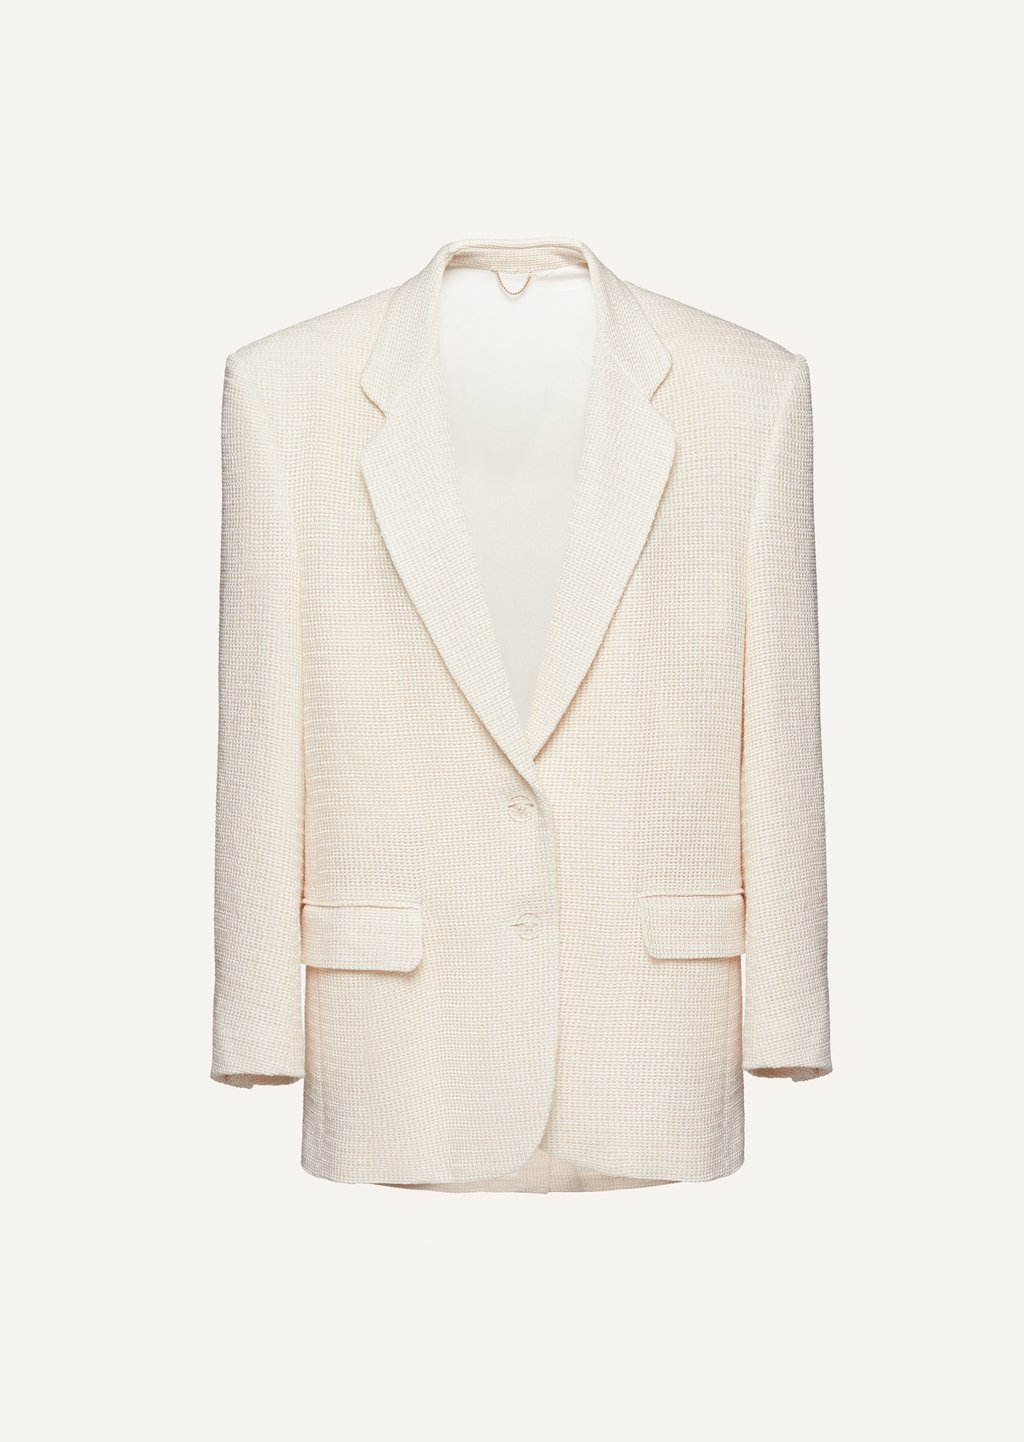 Tailored oversized handwoven blazer in cream by Magda Butrym, available on magdabutrym.com for $3035 Kylie Jenner Outerwear Exact Product